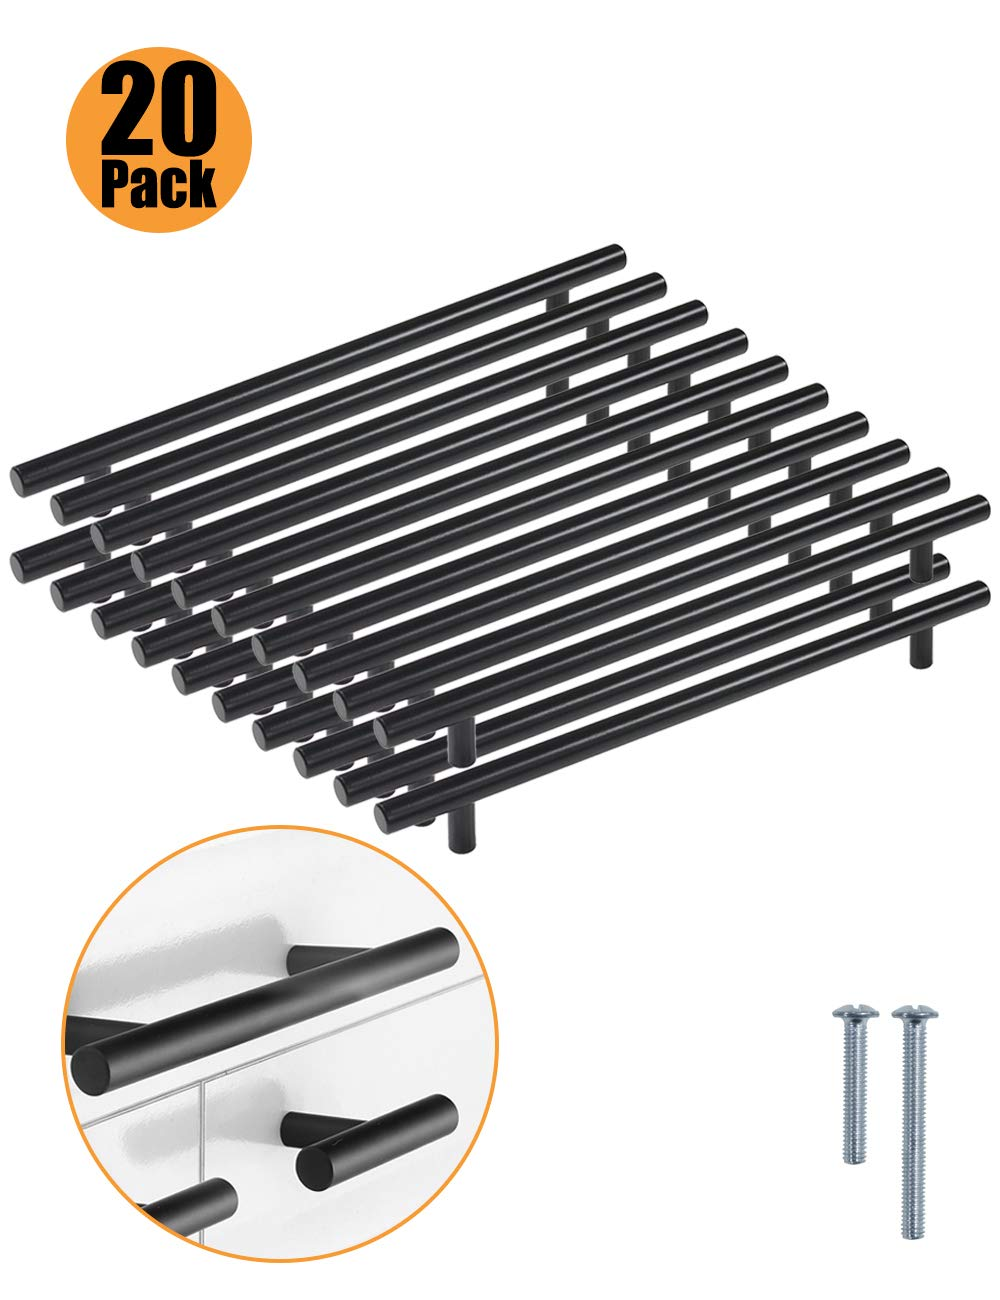 PinLin 10 Pack Kitchen Cabinet Door Handles Stainless Steel Bedroom Drawers Cup Board Pulls Hole Centre 128 mm 6x25 mm Screws Black T Bar Handle Series